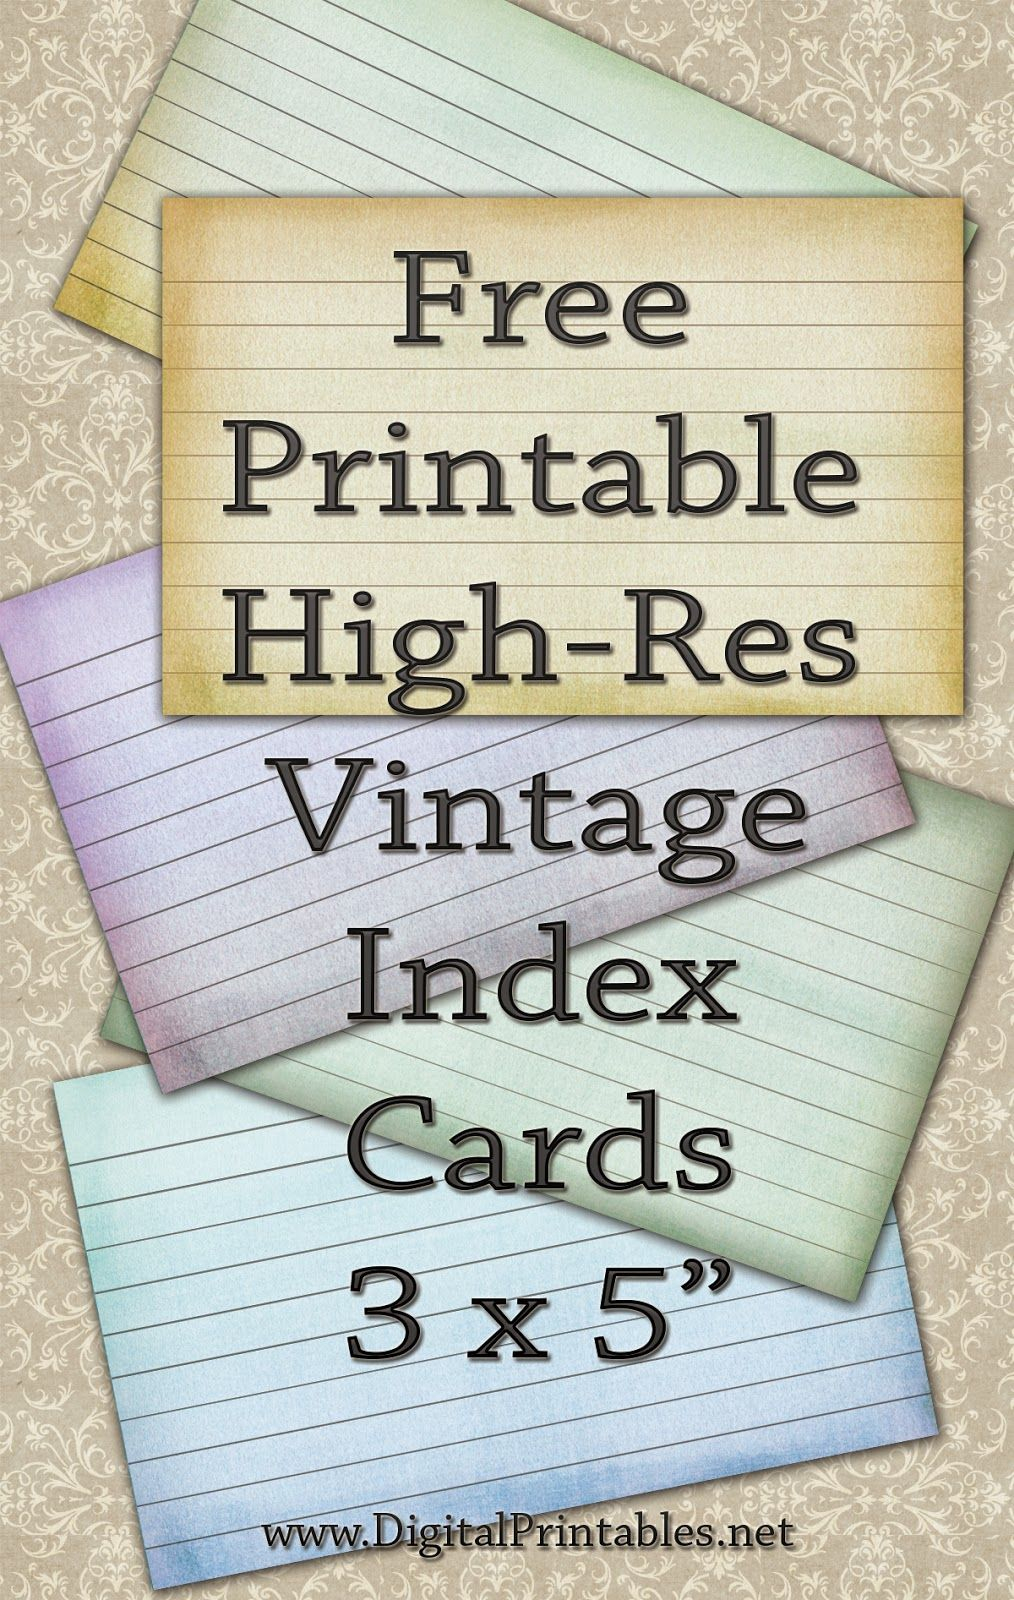 Free Printable Index Cards Vintage Look High Res | Freebies | Index - Free Printable Index Cards